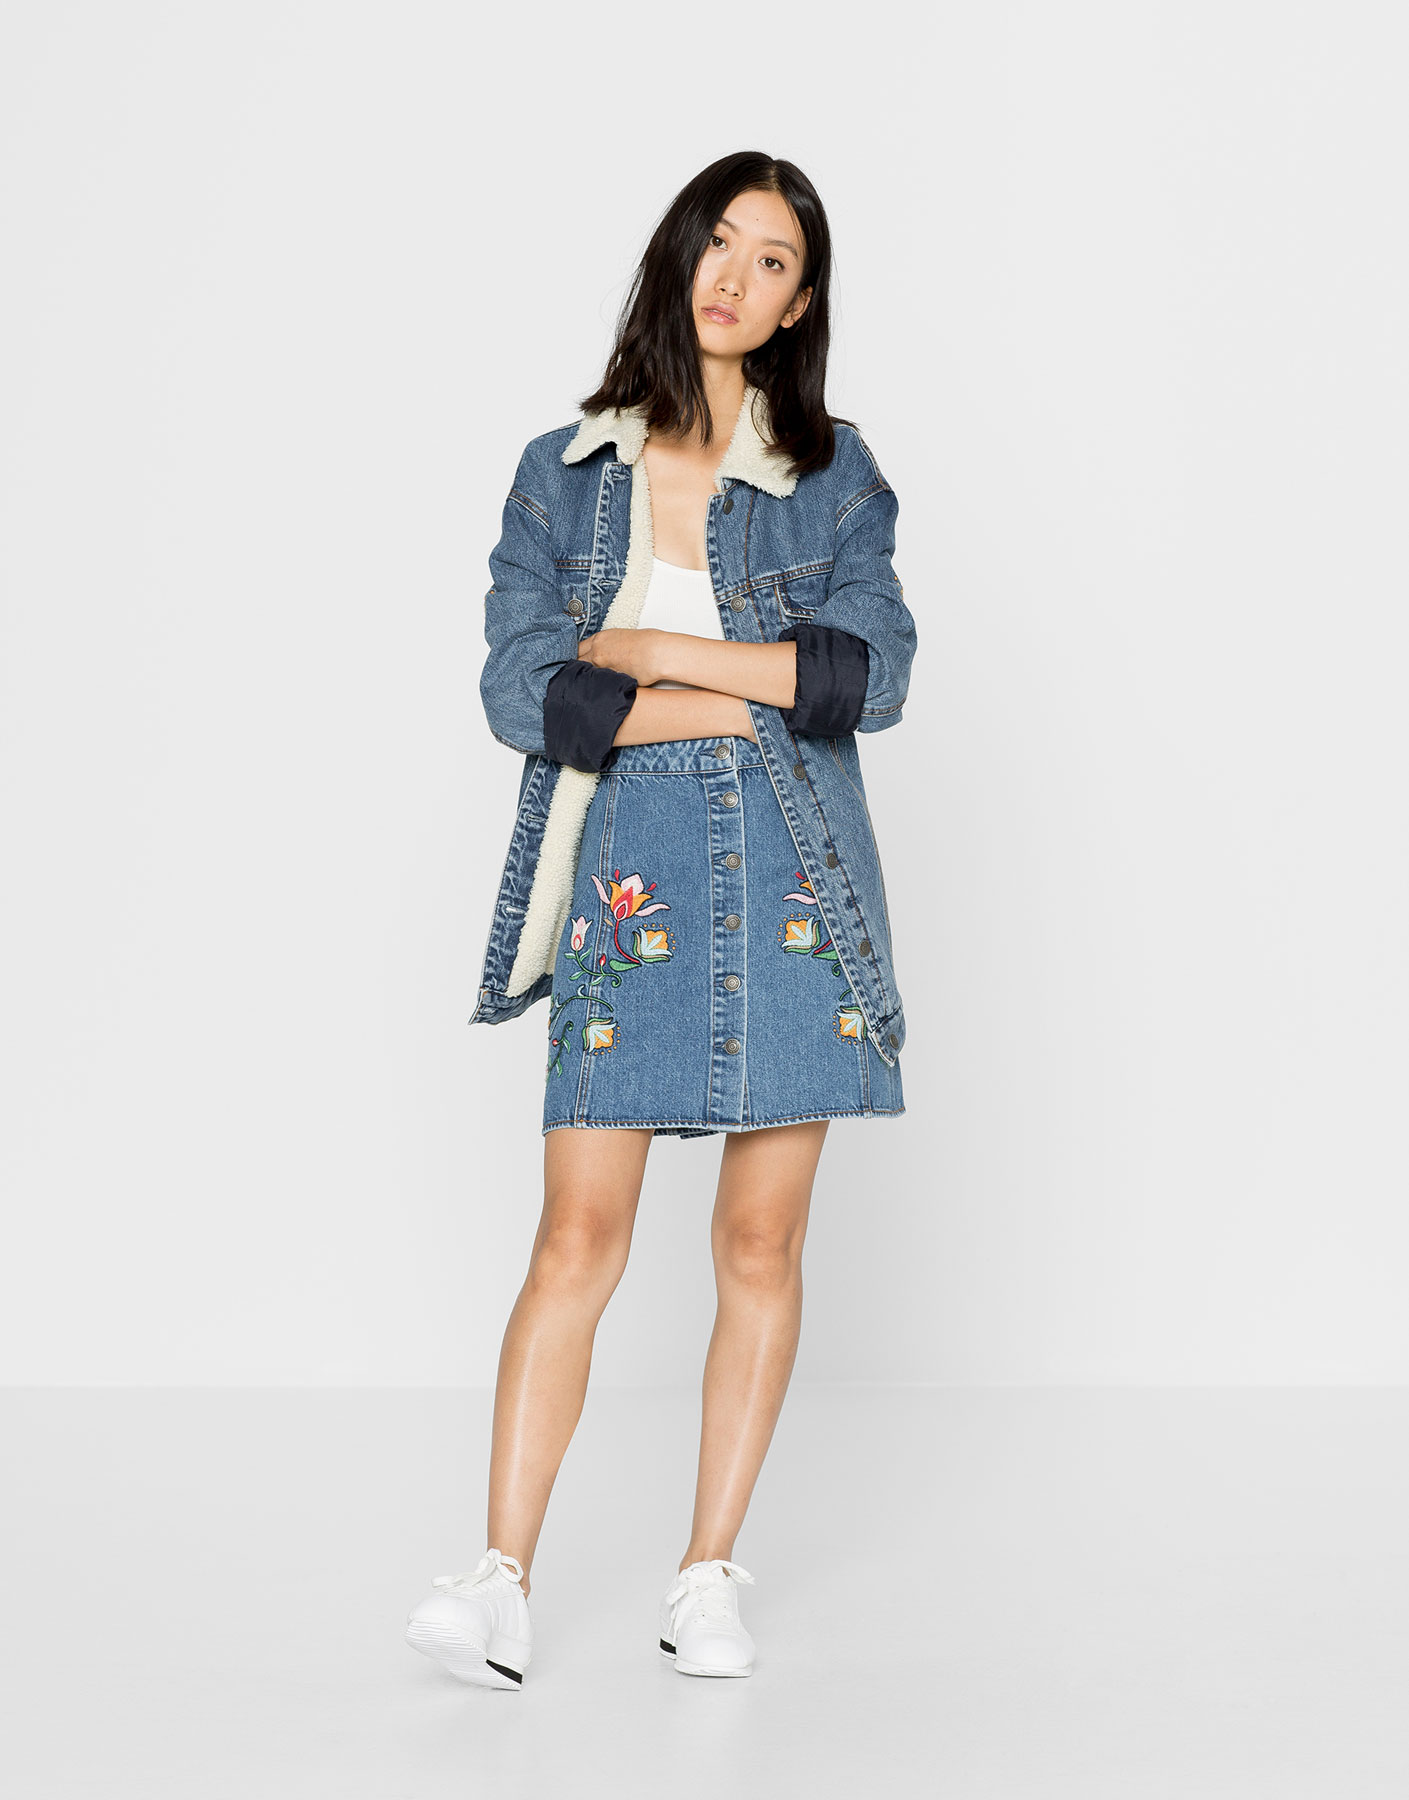 Denim Skirt With Embroidered Flowers